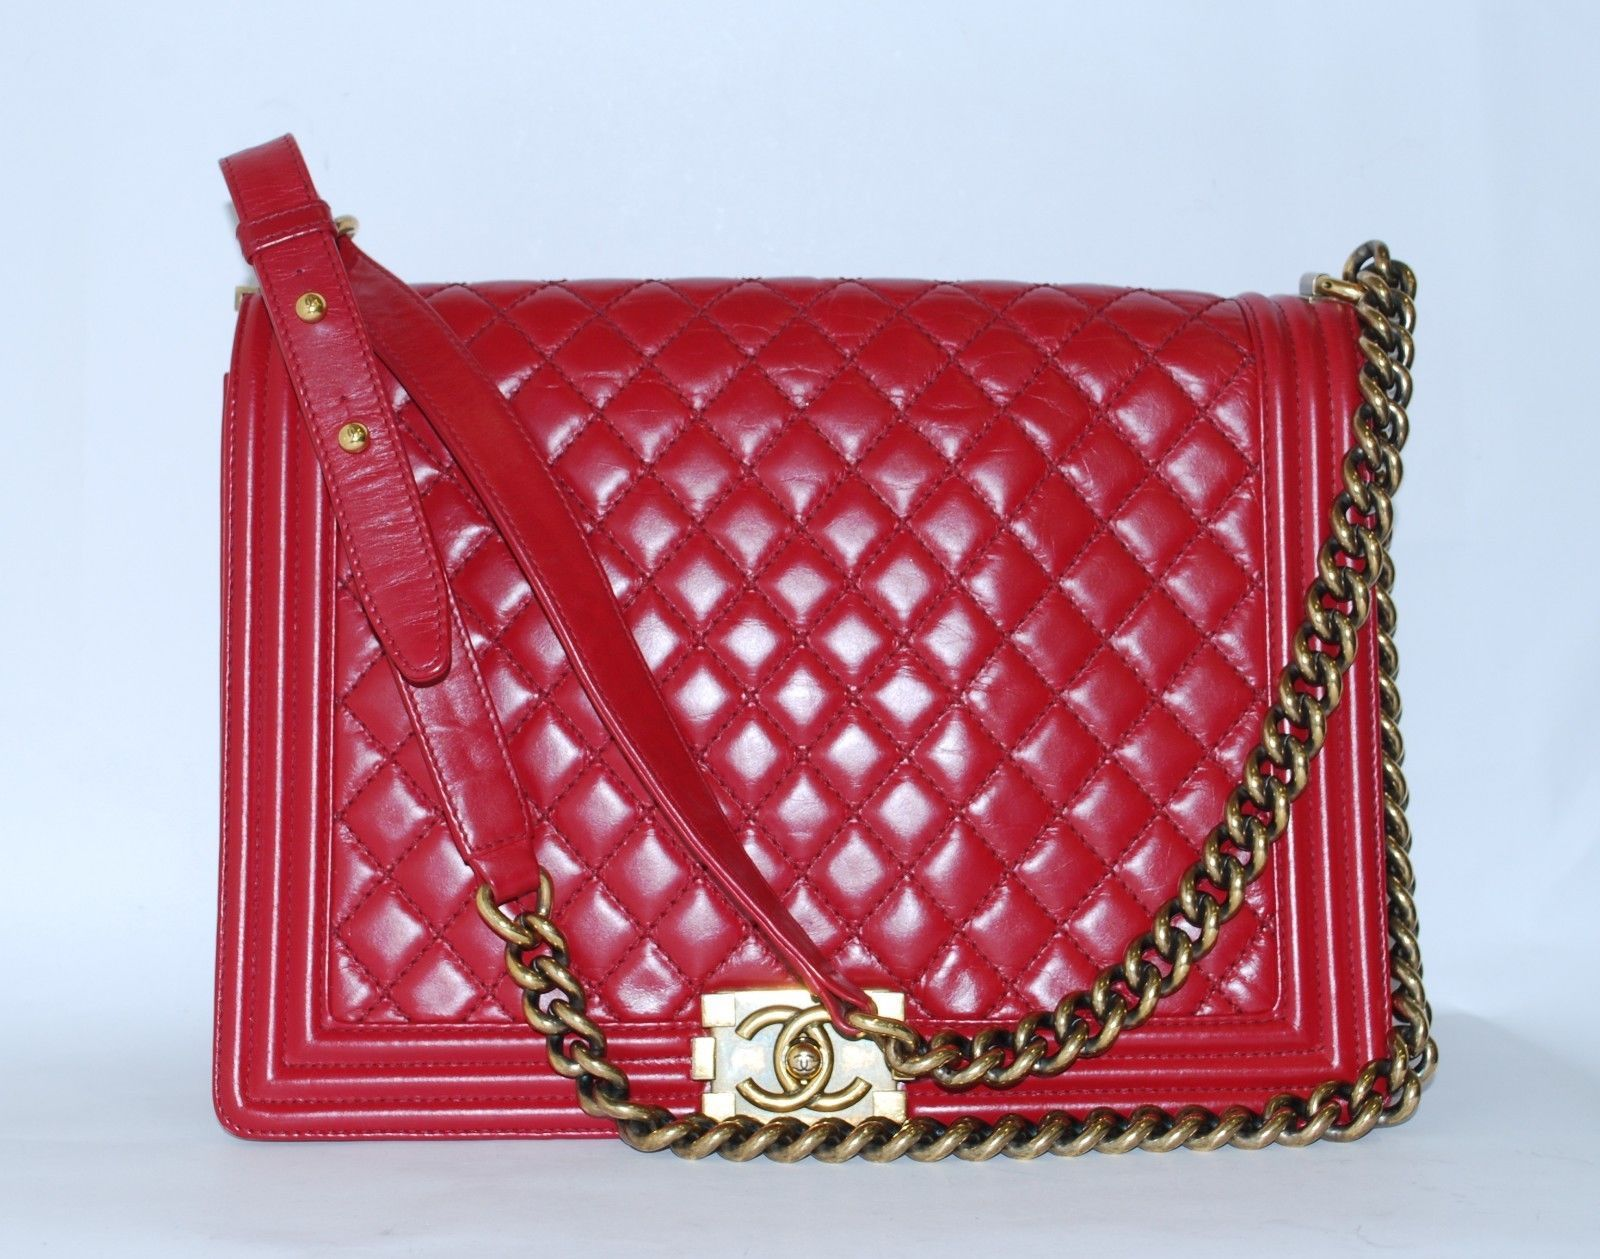 e3ad04400ef6 CHANEL Boy Red CC Quilted Leather Handbag and 50 similar items